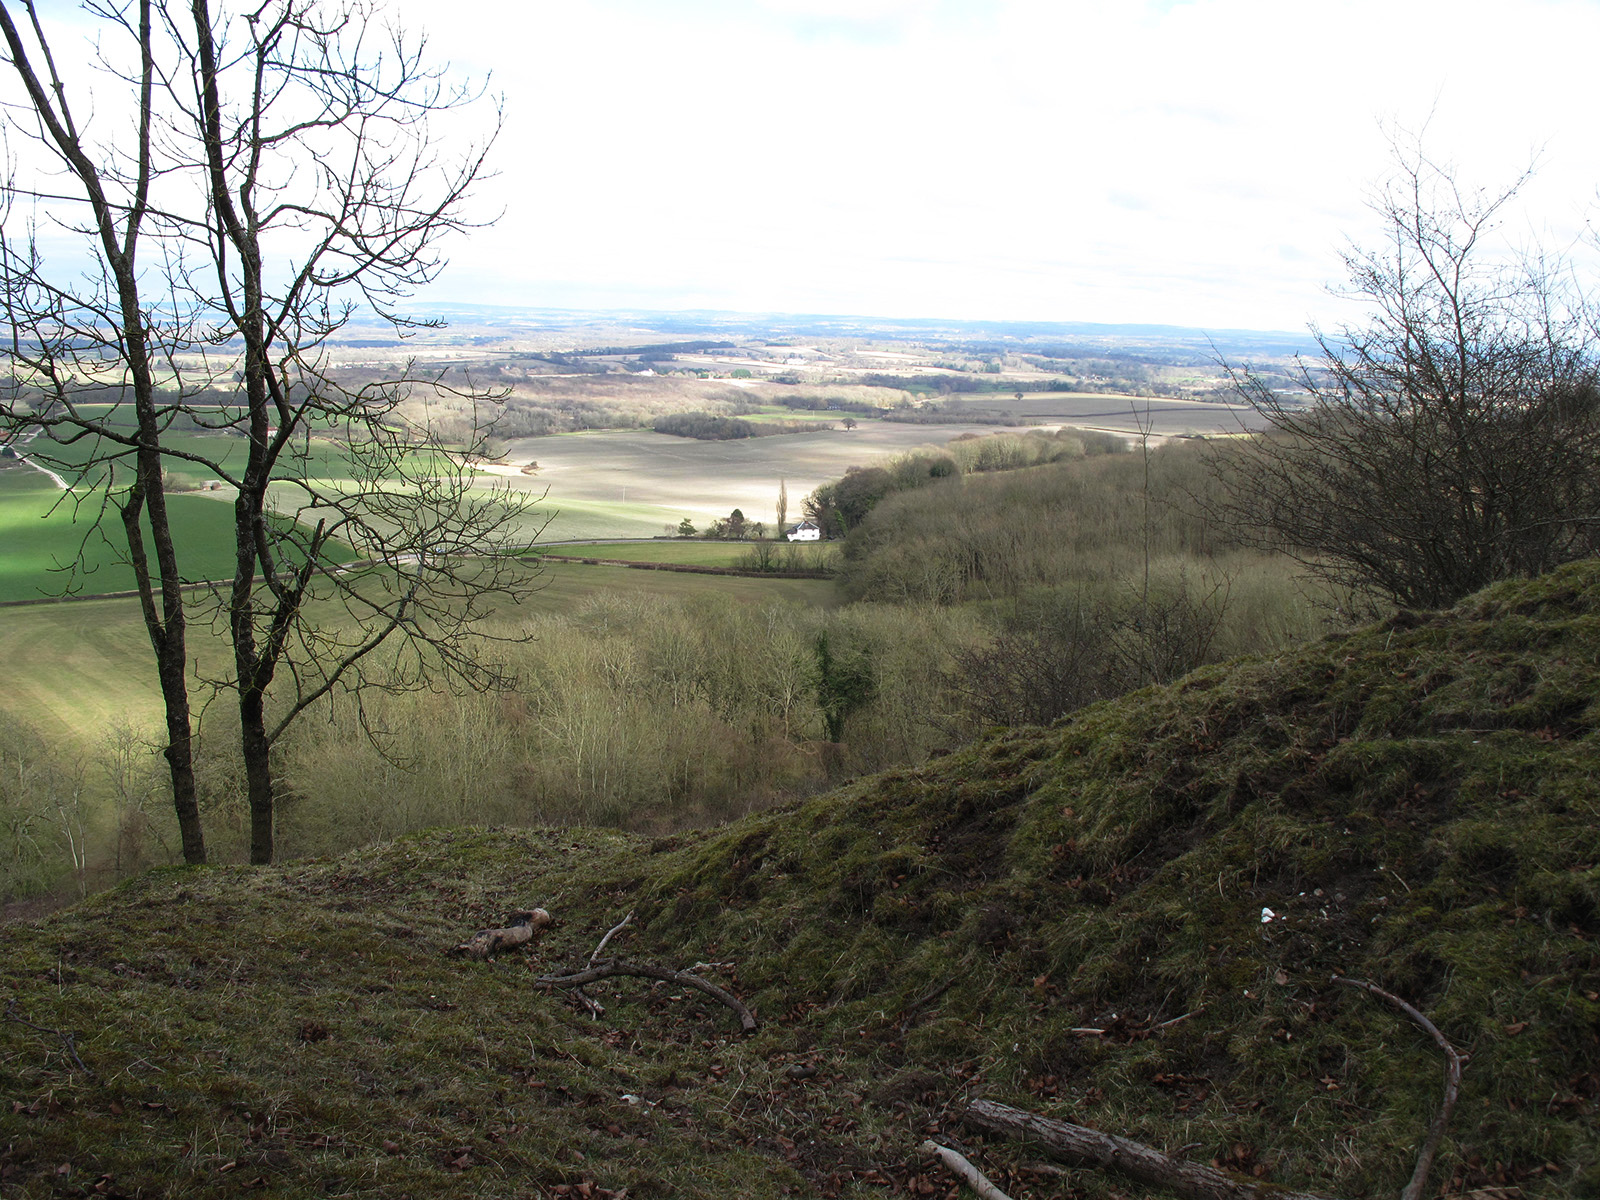 View from the South Downs across the Low Weald